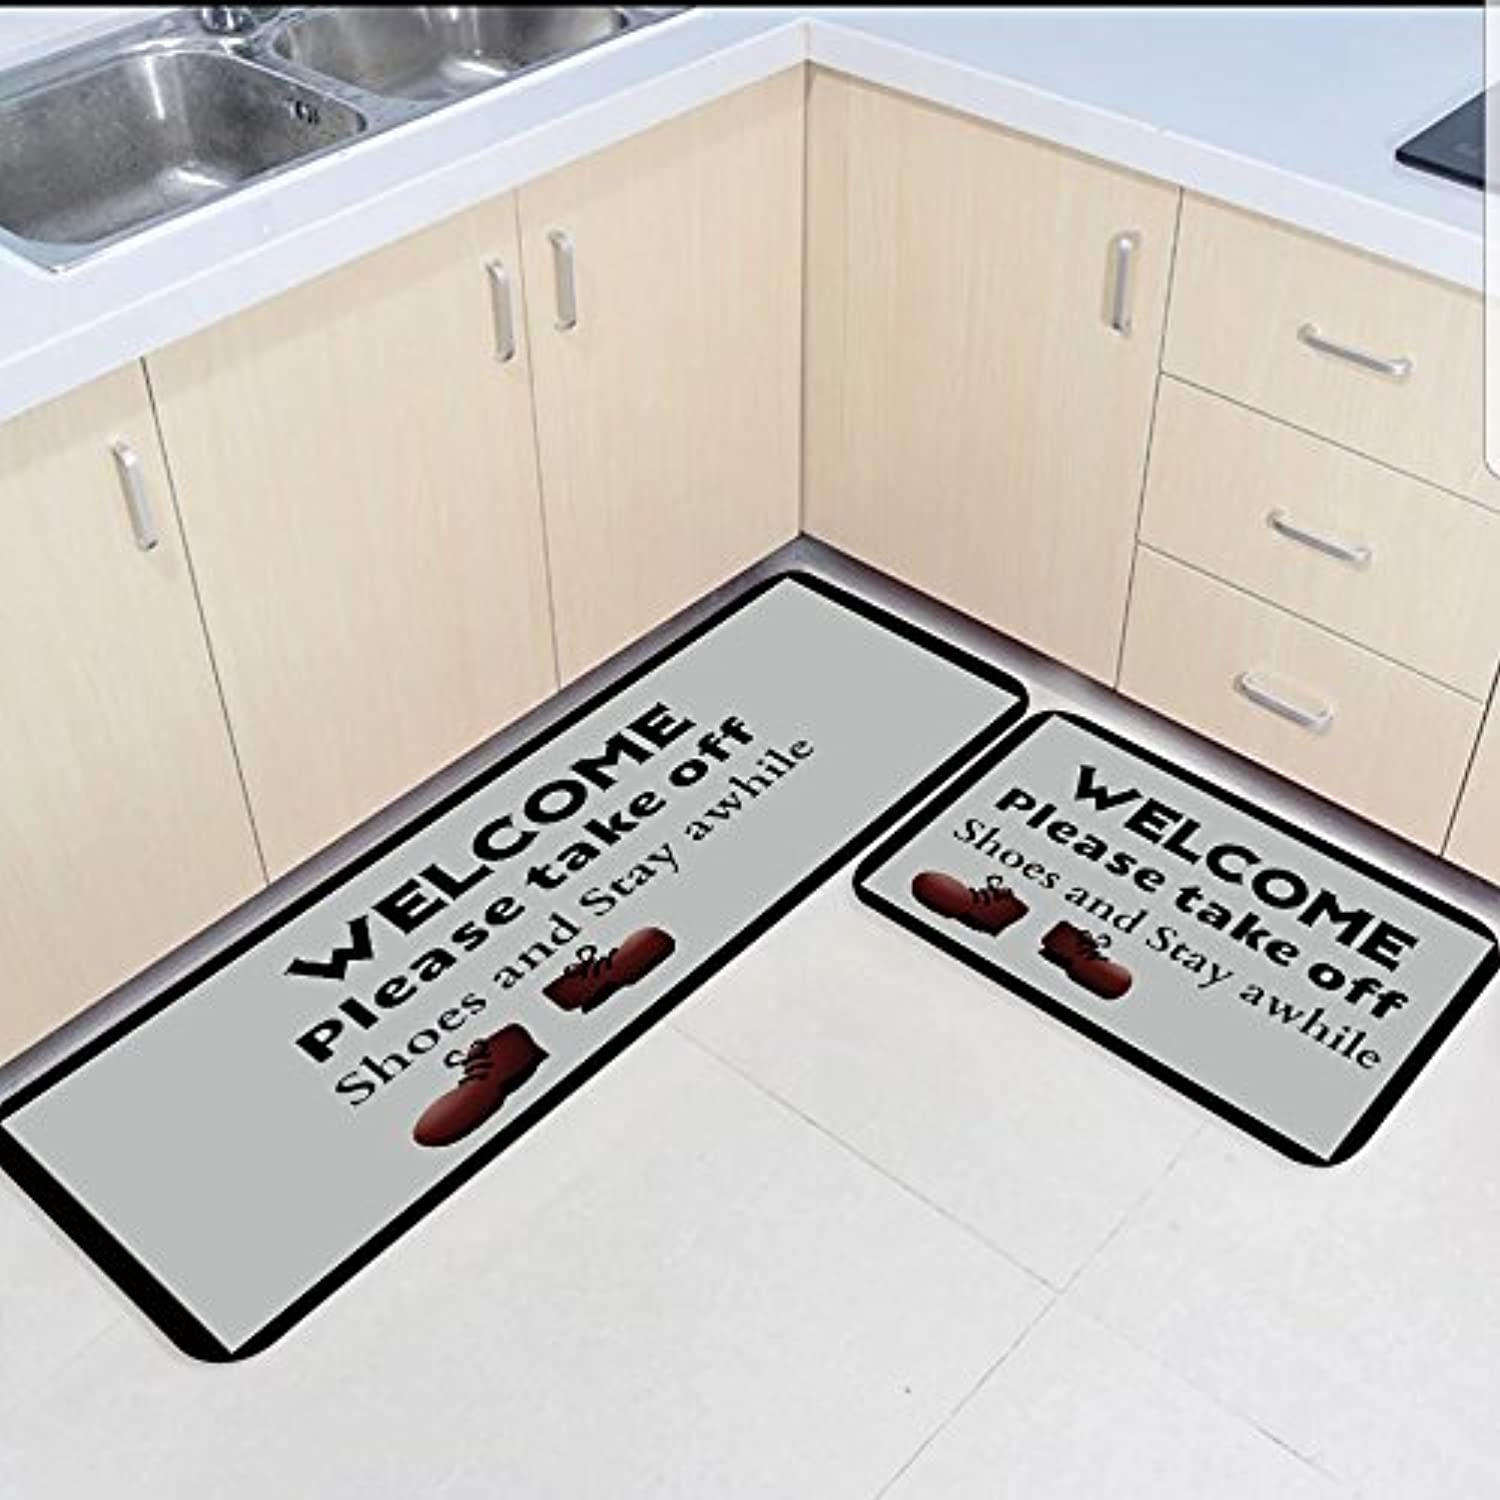 Non Slip Resilient Rug Set 2 Piece Absorbent Anti-Skid Entry Way Doormat for Bathroom Kitchen Toilet Floor Welcome Please Take Off shoes and Stay Awhile Pattern Home Deco 19.7 x31.5 +19.7 x47.2